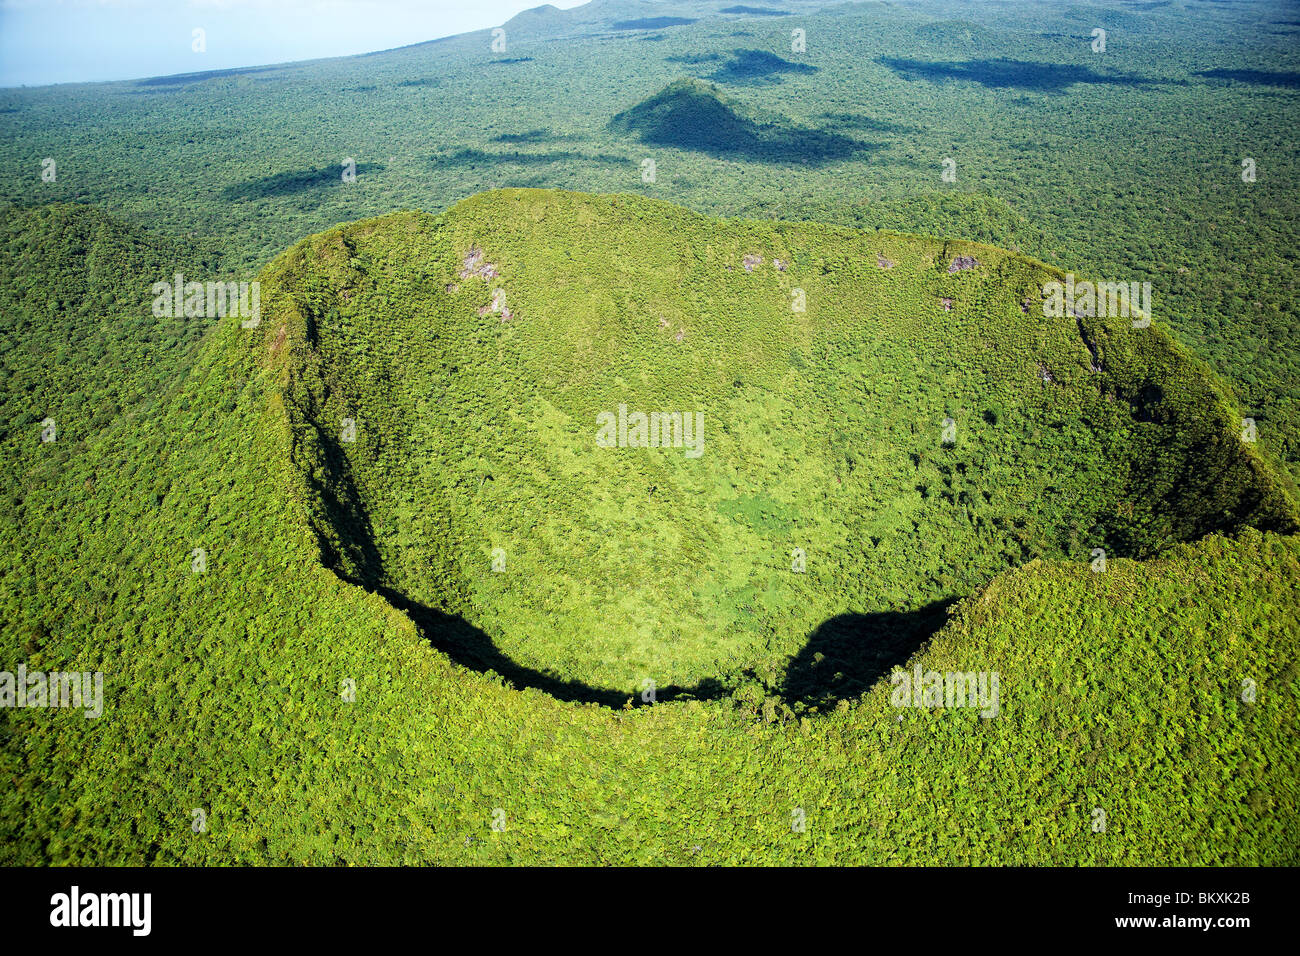 Aerial view of Mt To'iave'a, Savaii, Samoa - Stock Image